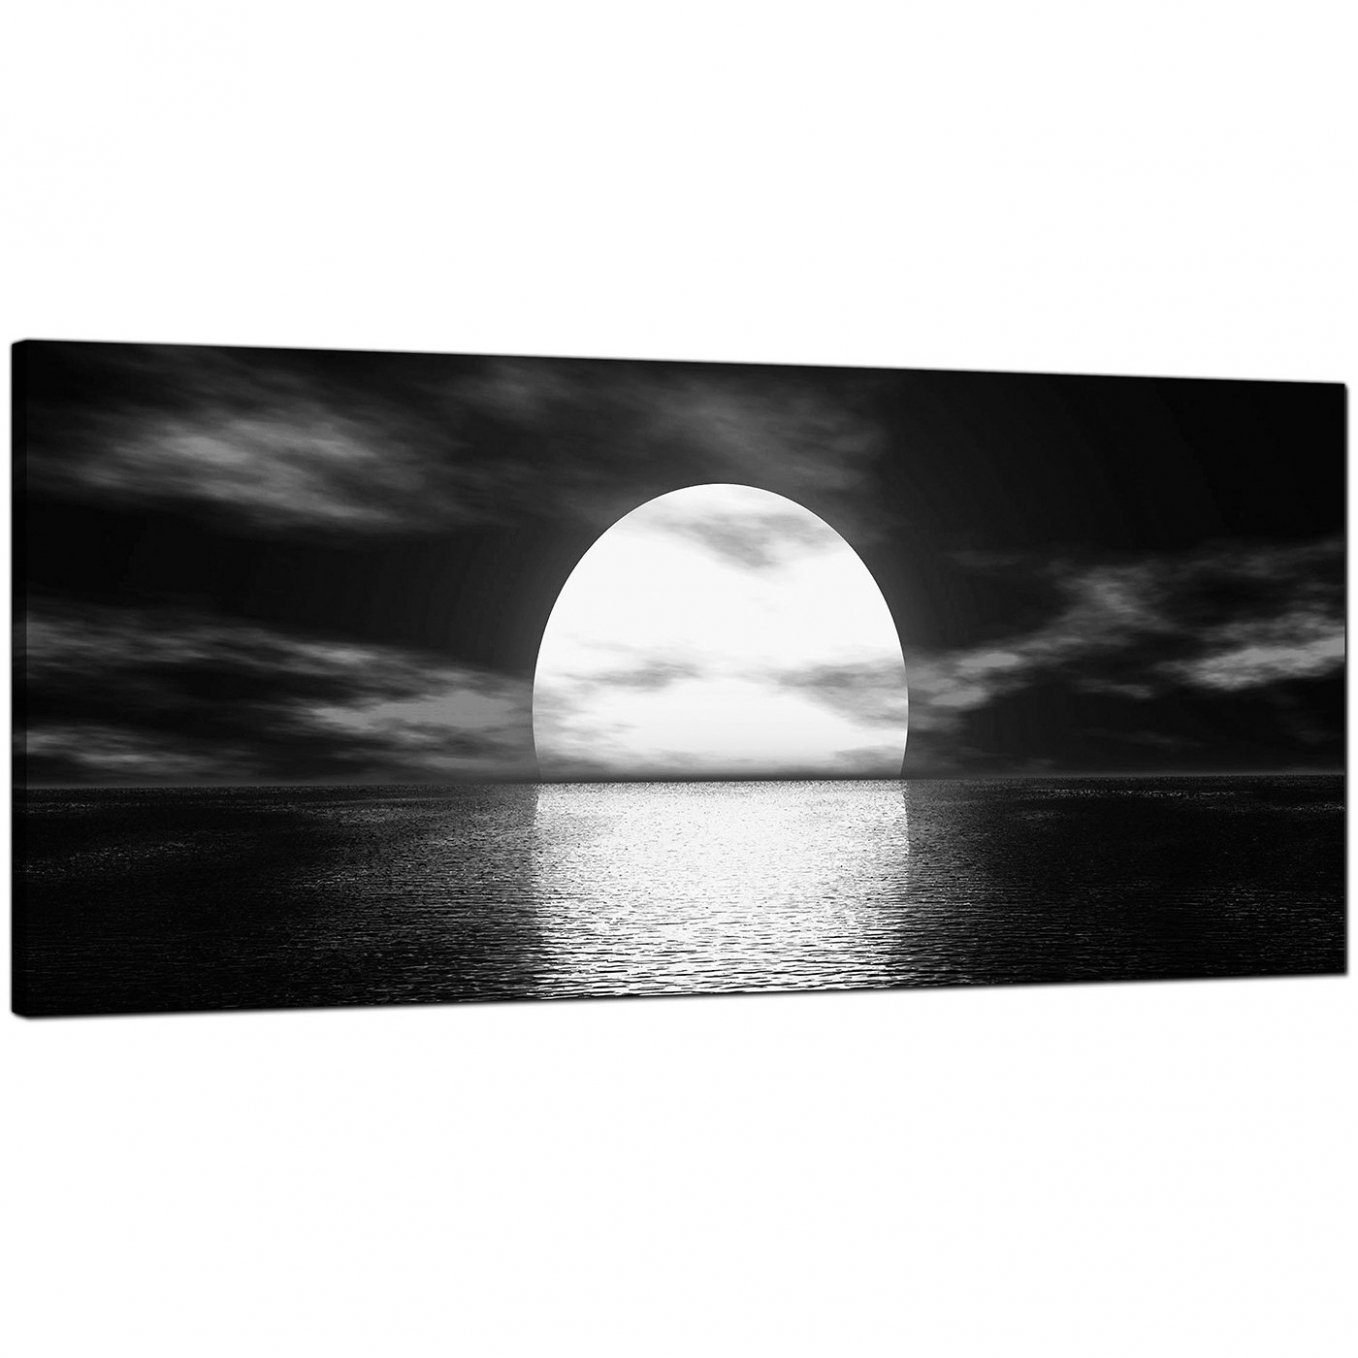 10 Best Ideas Of Black And White Large Canvas Wall Art With 2018 Black And White Photography Canvas Wall Art (View 2 of 15)